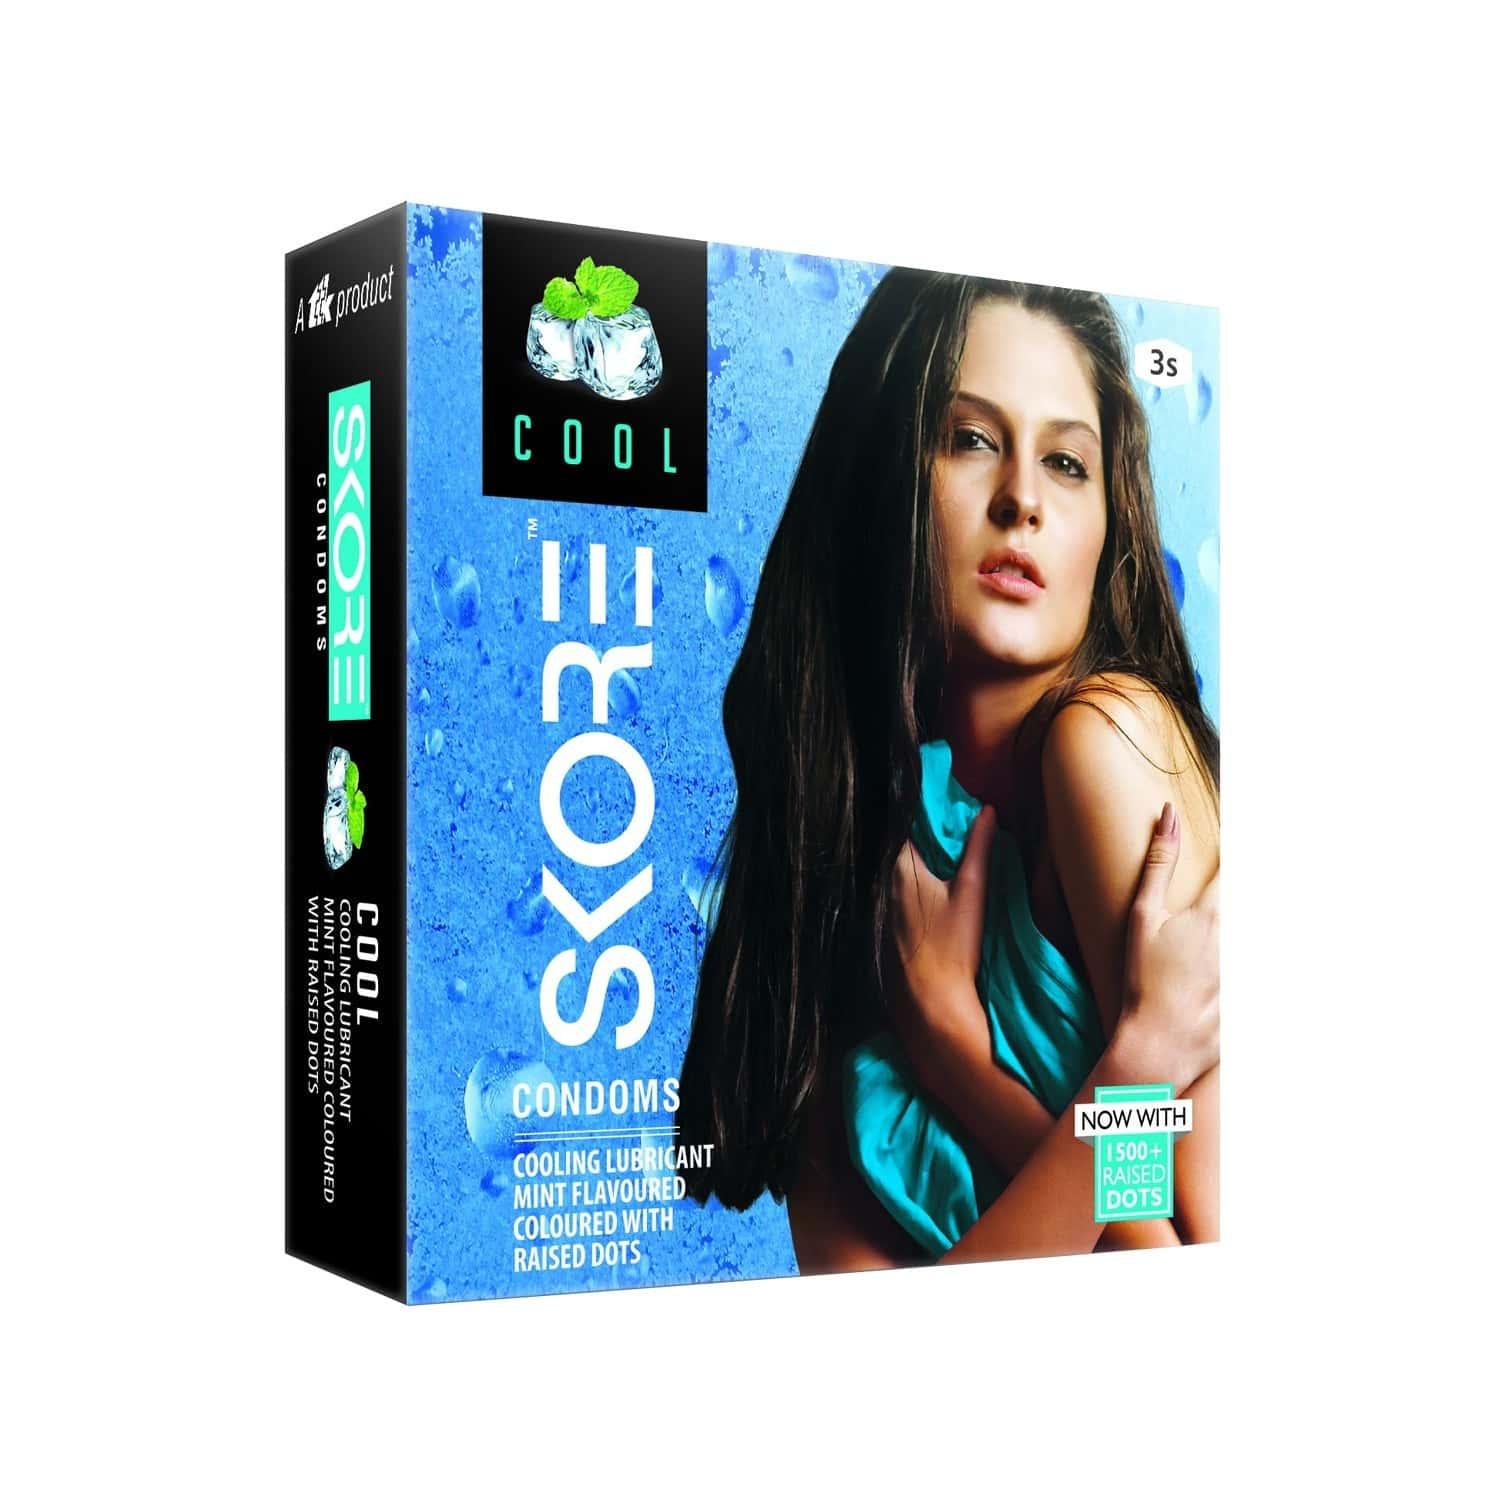 Skore Cool With 1500+ Raised Dots Pack Of 3